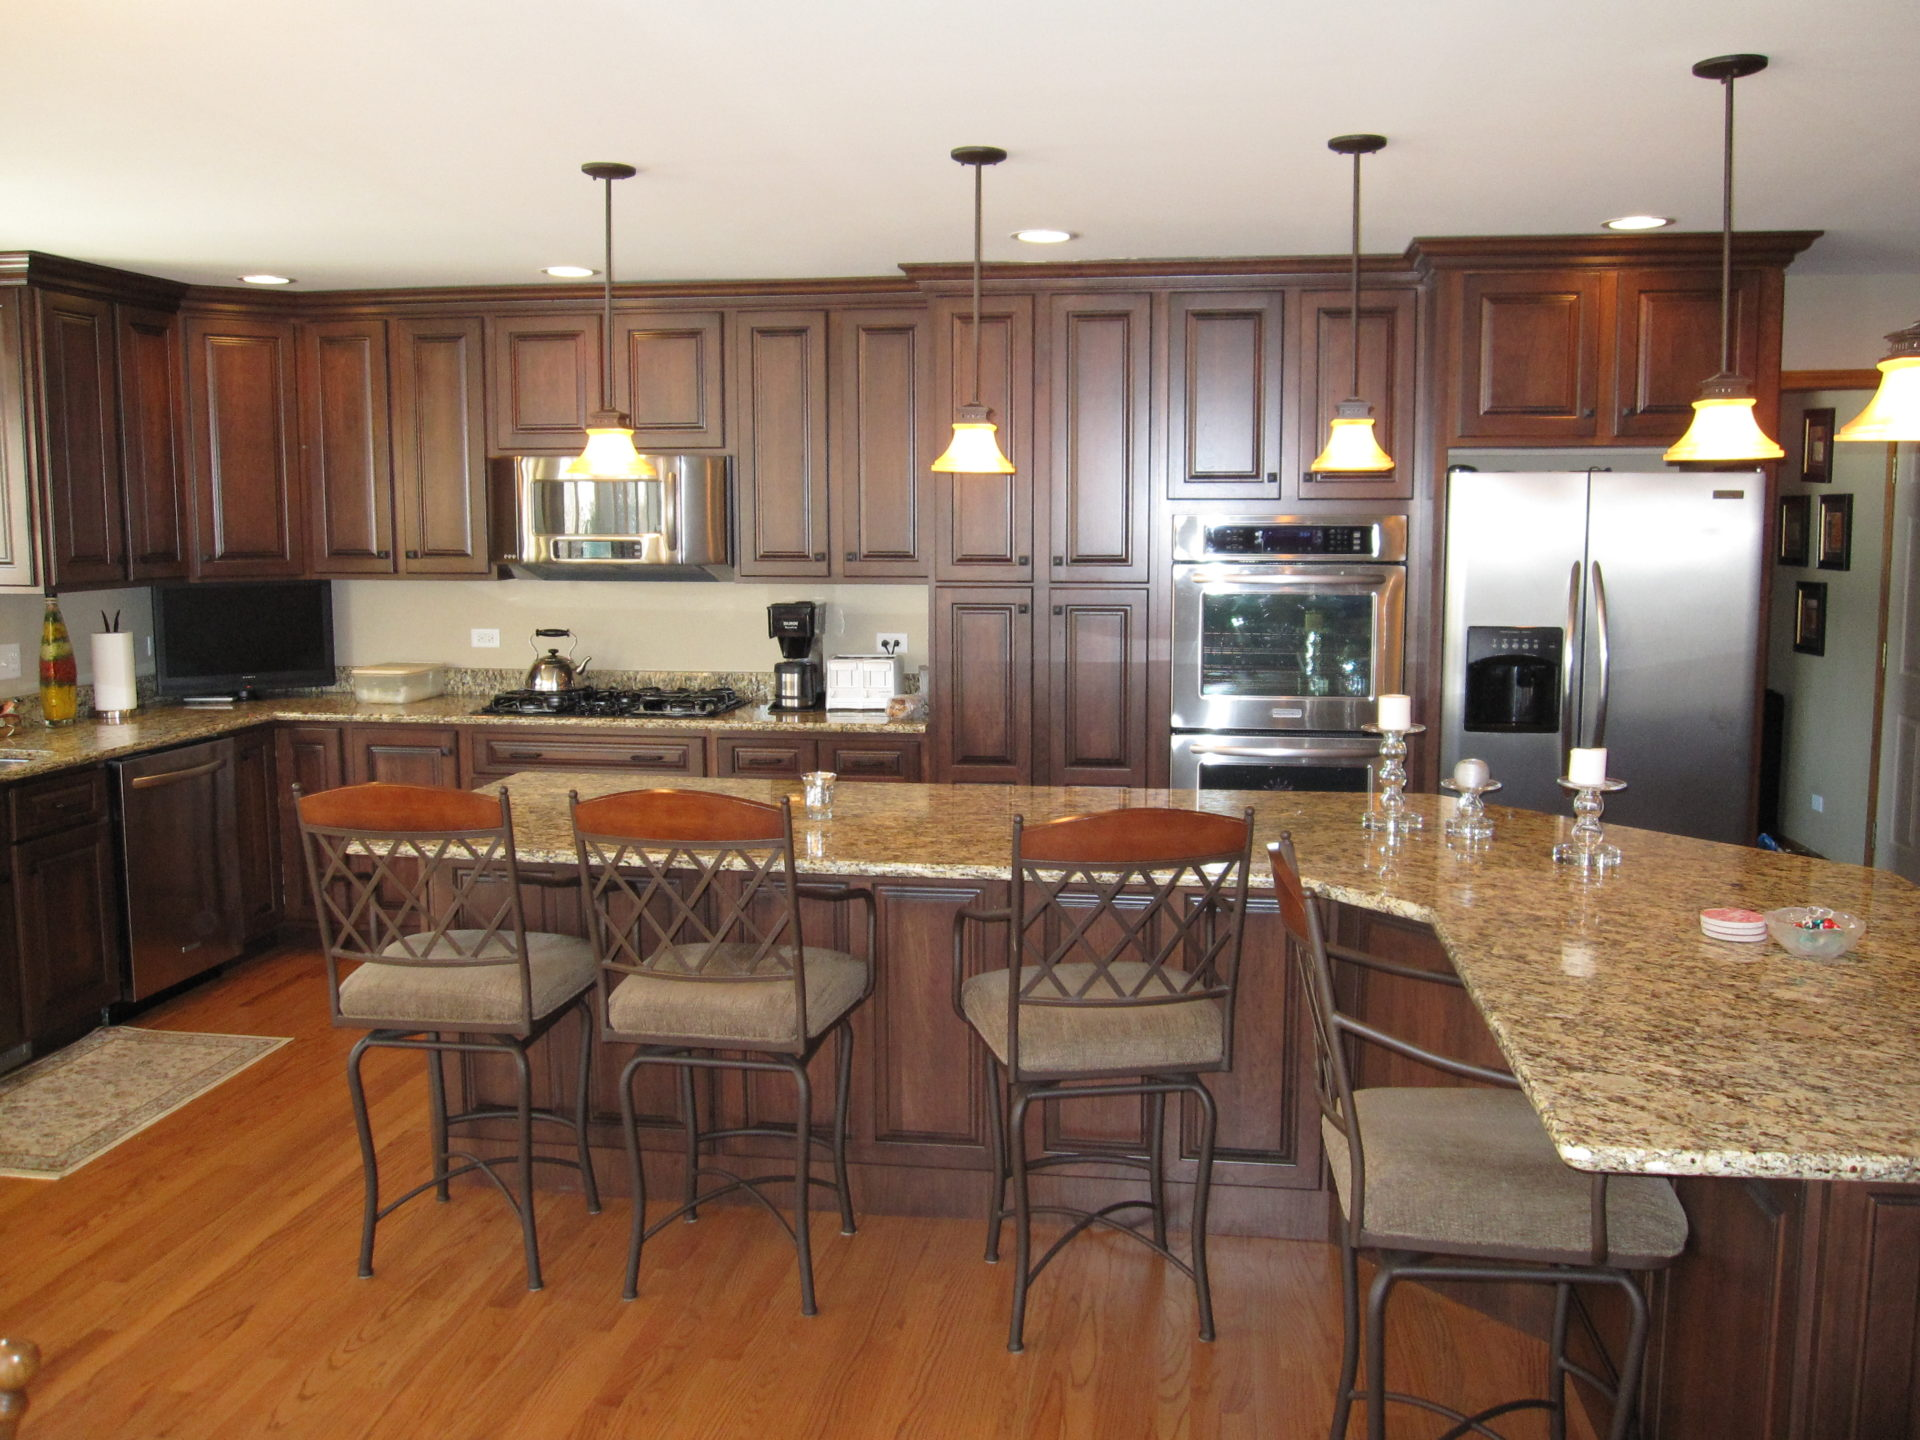 Functionality & Convenience - J&J Construction Kitchen Remodeling